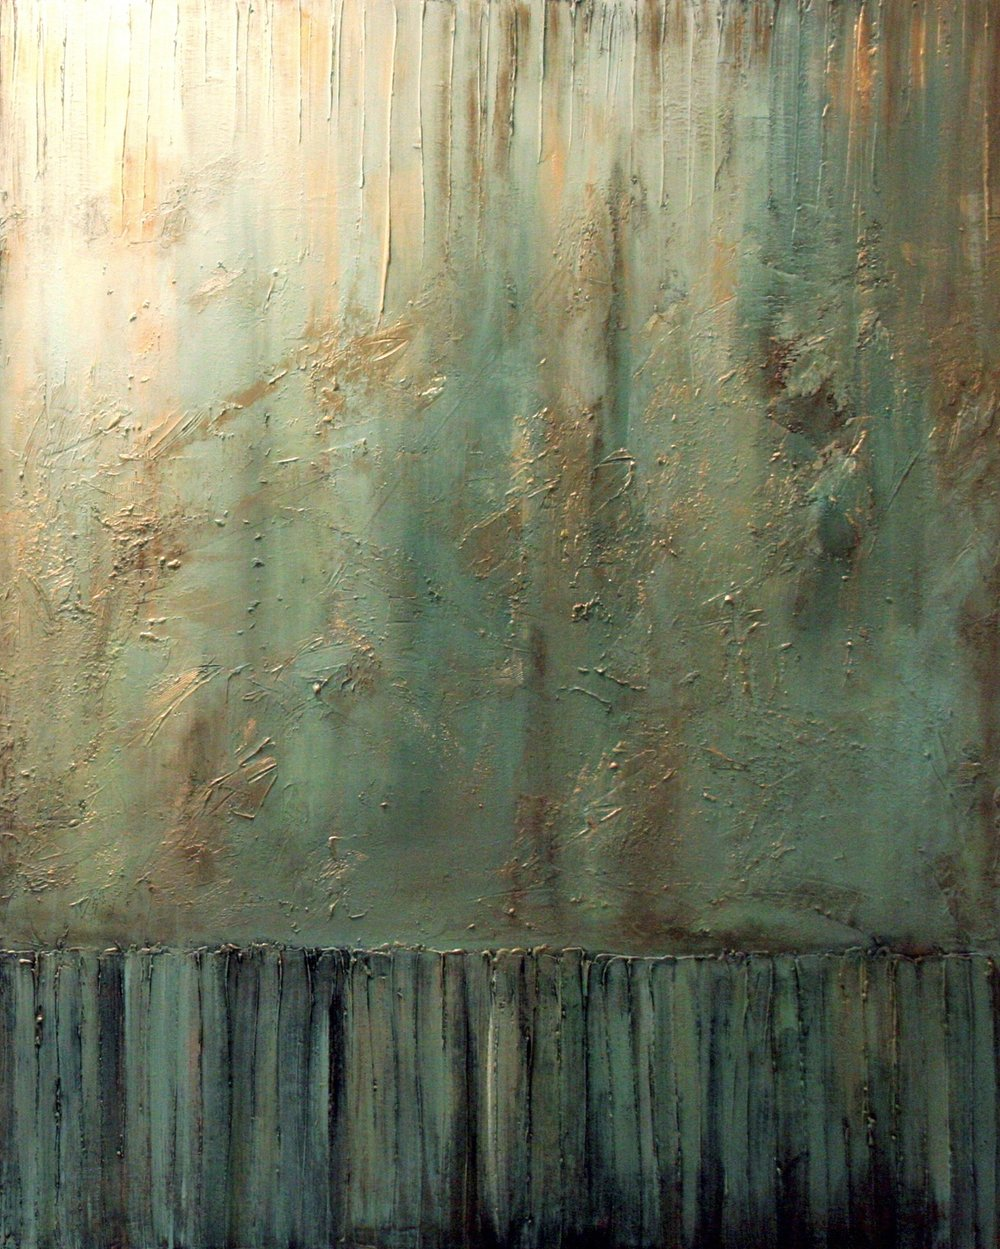 anasazi nights  60 x 96 inches | 2 panels 60 x 48 x 1.5 inches  mixed media + gold dust on canvas  $9,680